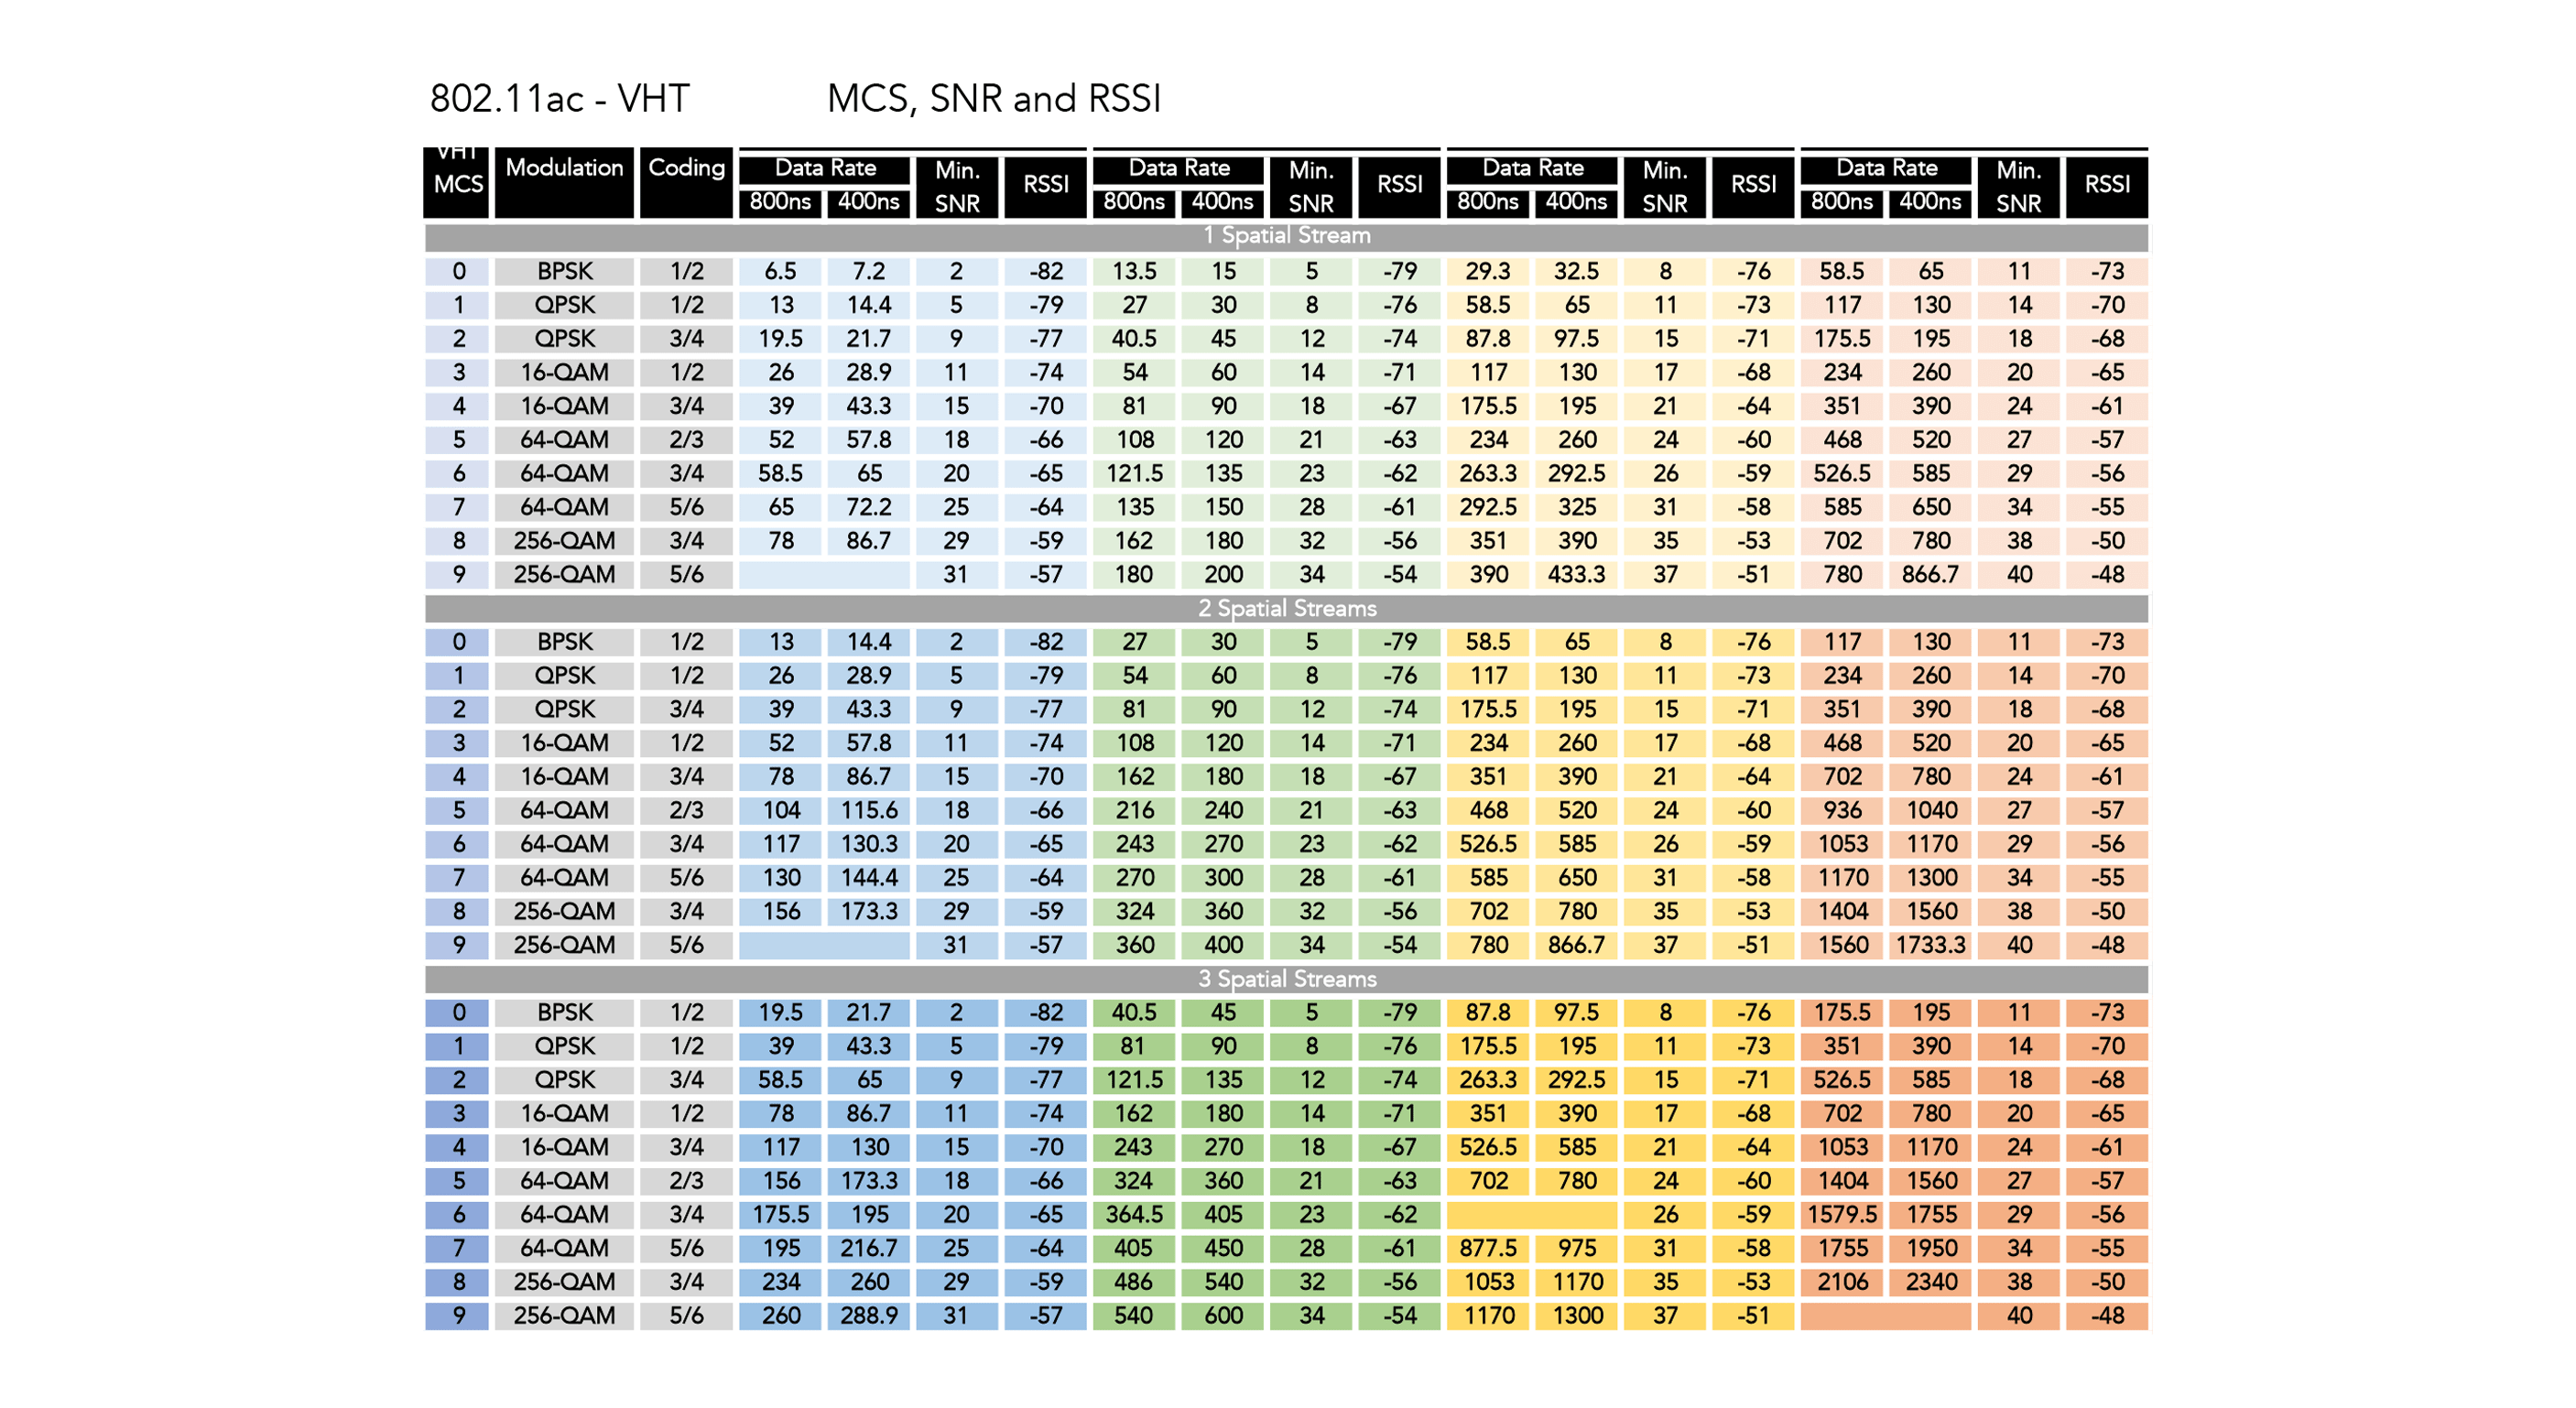 MCS SNR RSSI Chart